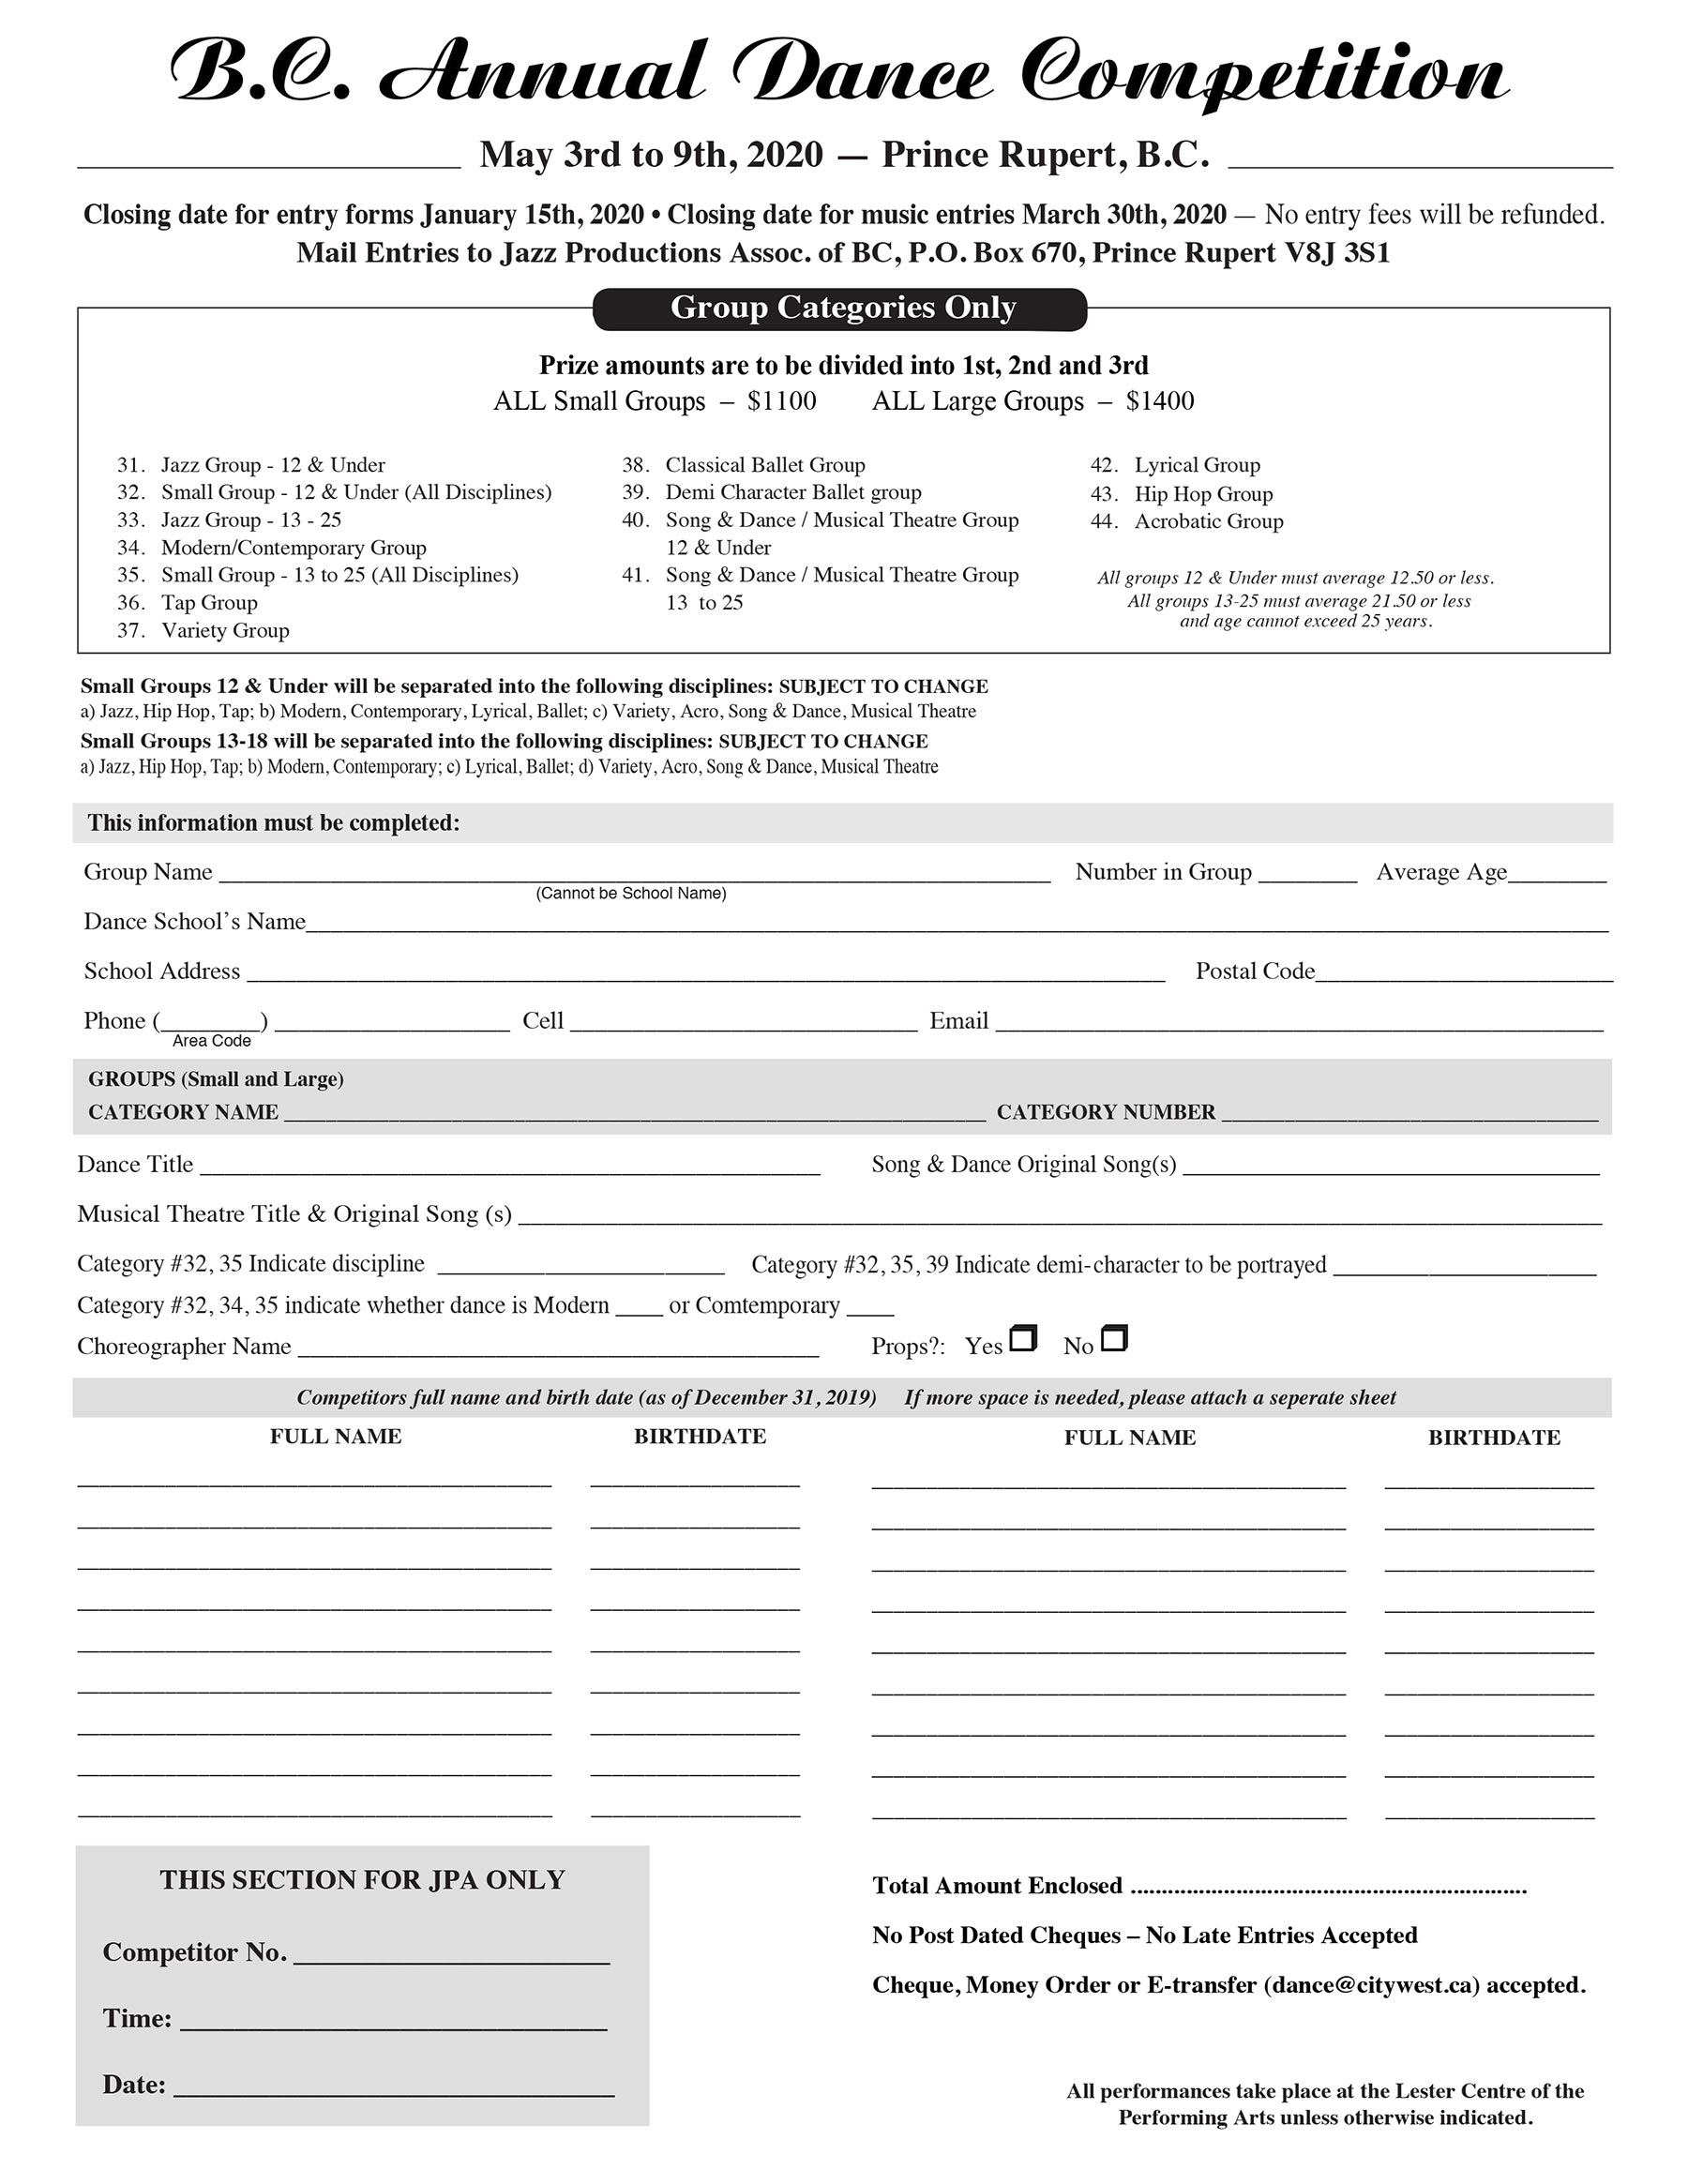 BCADC Group Entry Form